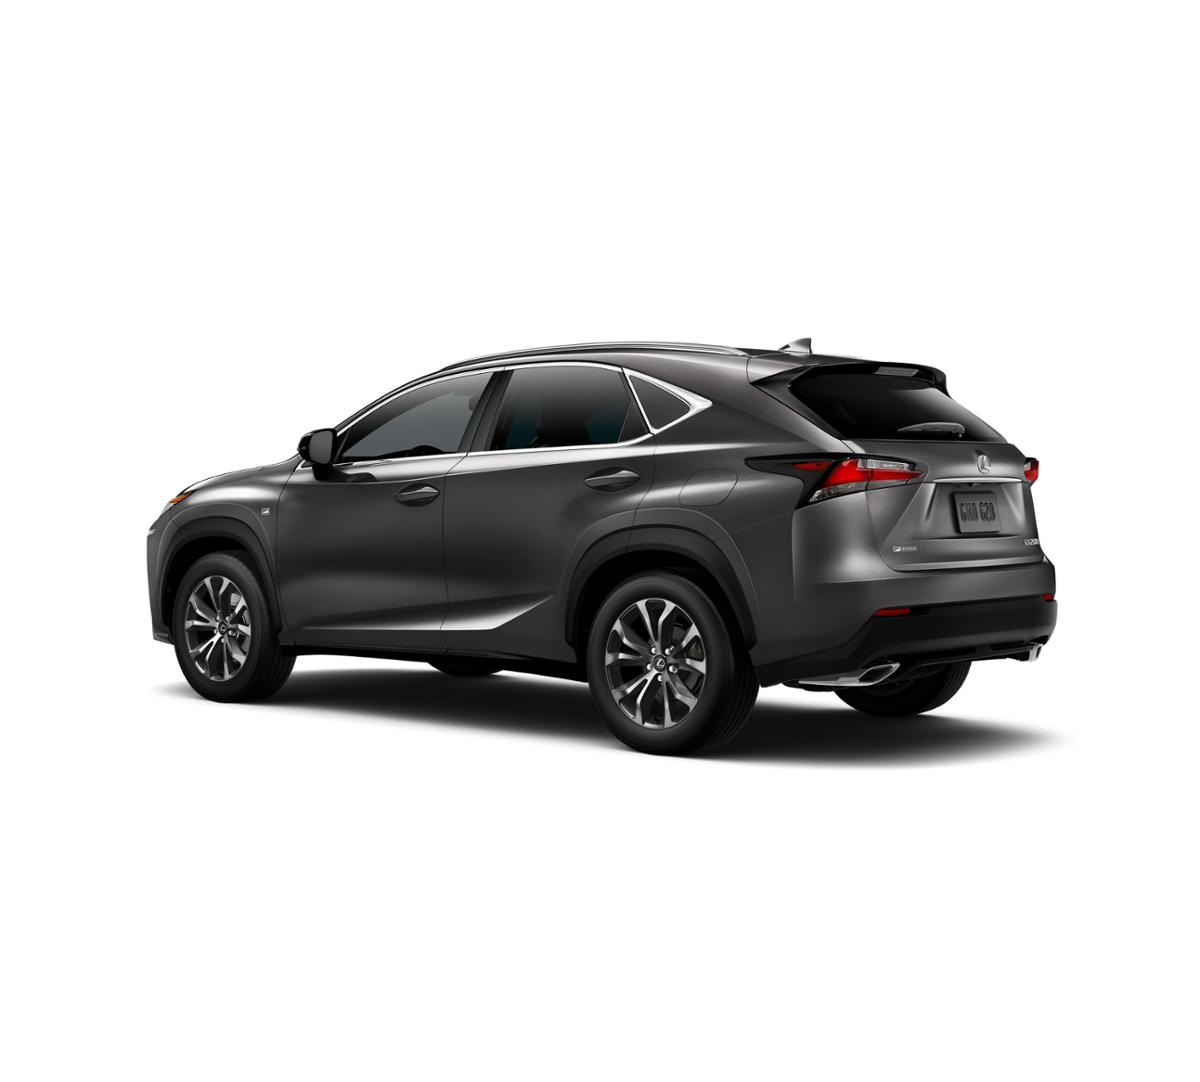 2014 Buick Regal Gs Awd For Sale: New 2017 Nebula Gray Pearl Lexus NX Turbo F Sport For Sale